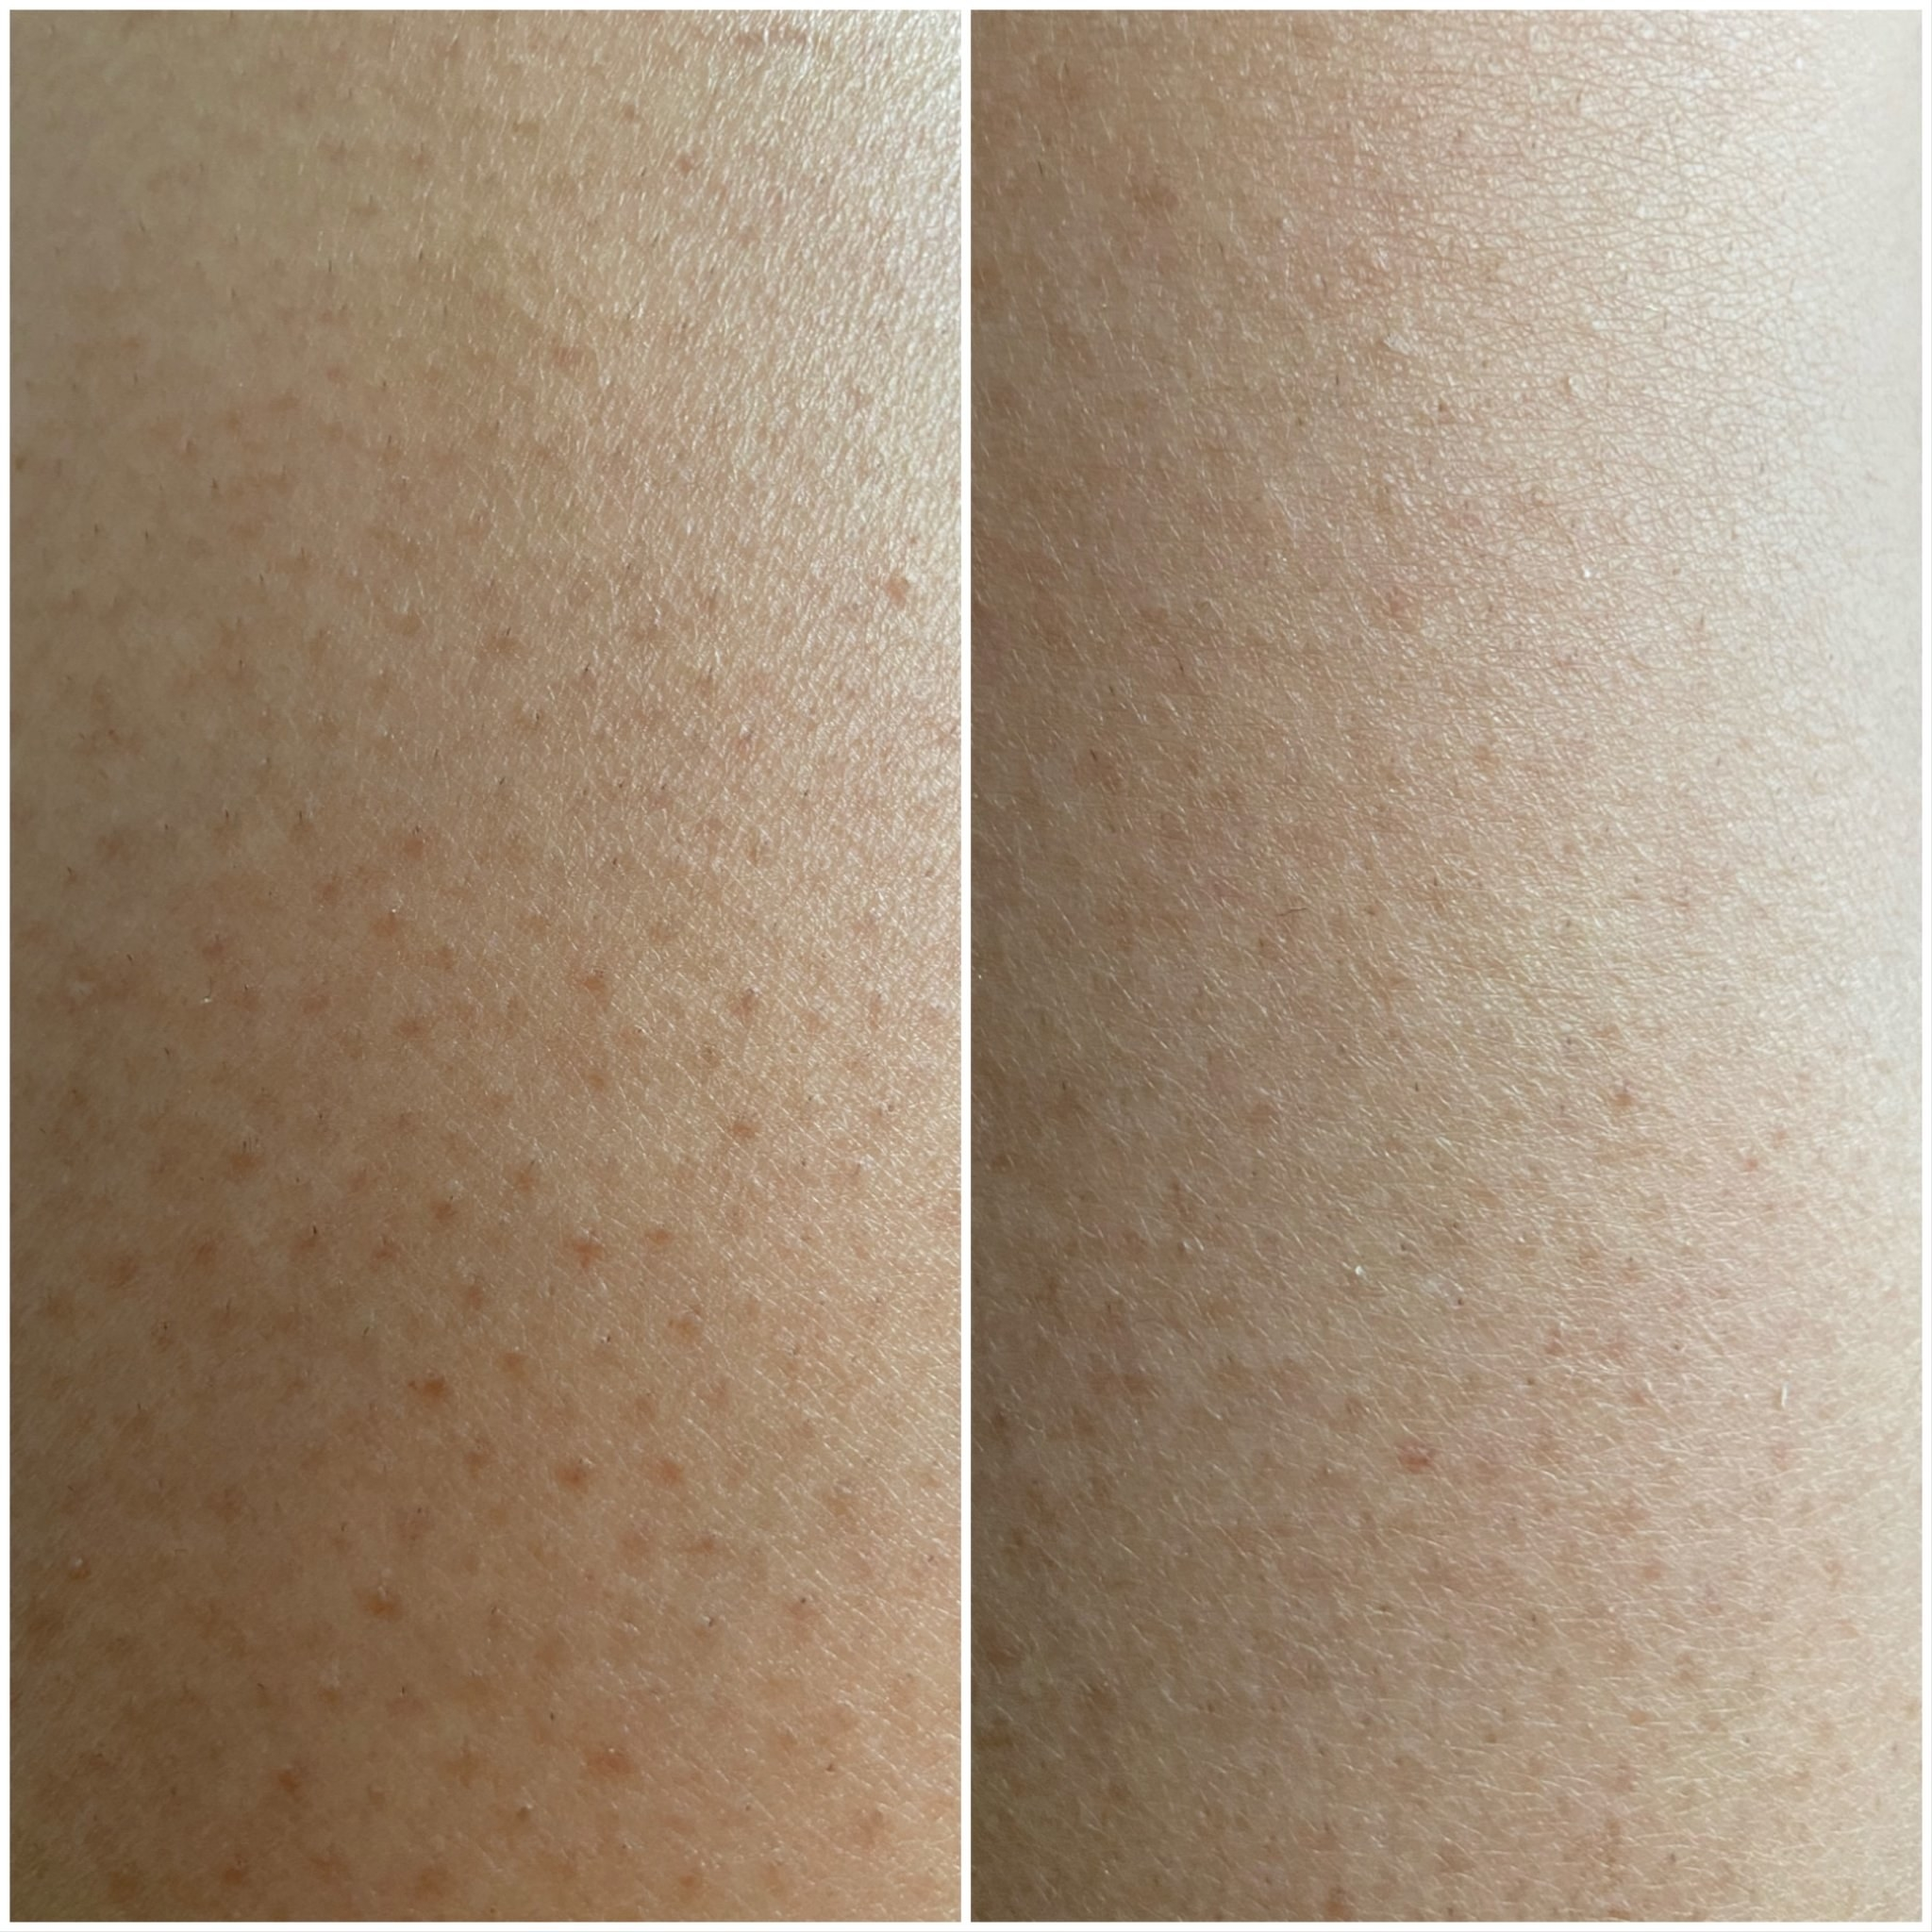 a before and after of skin with ingrown hairs